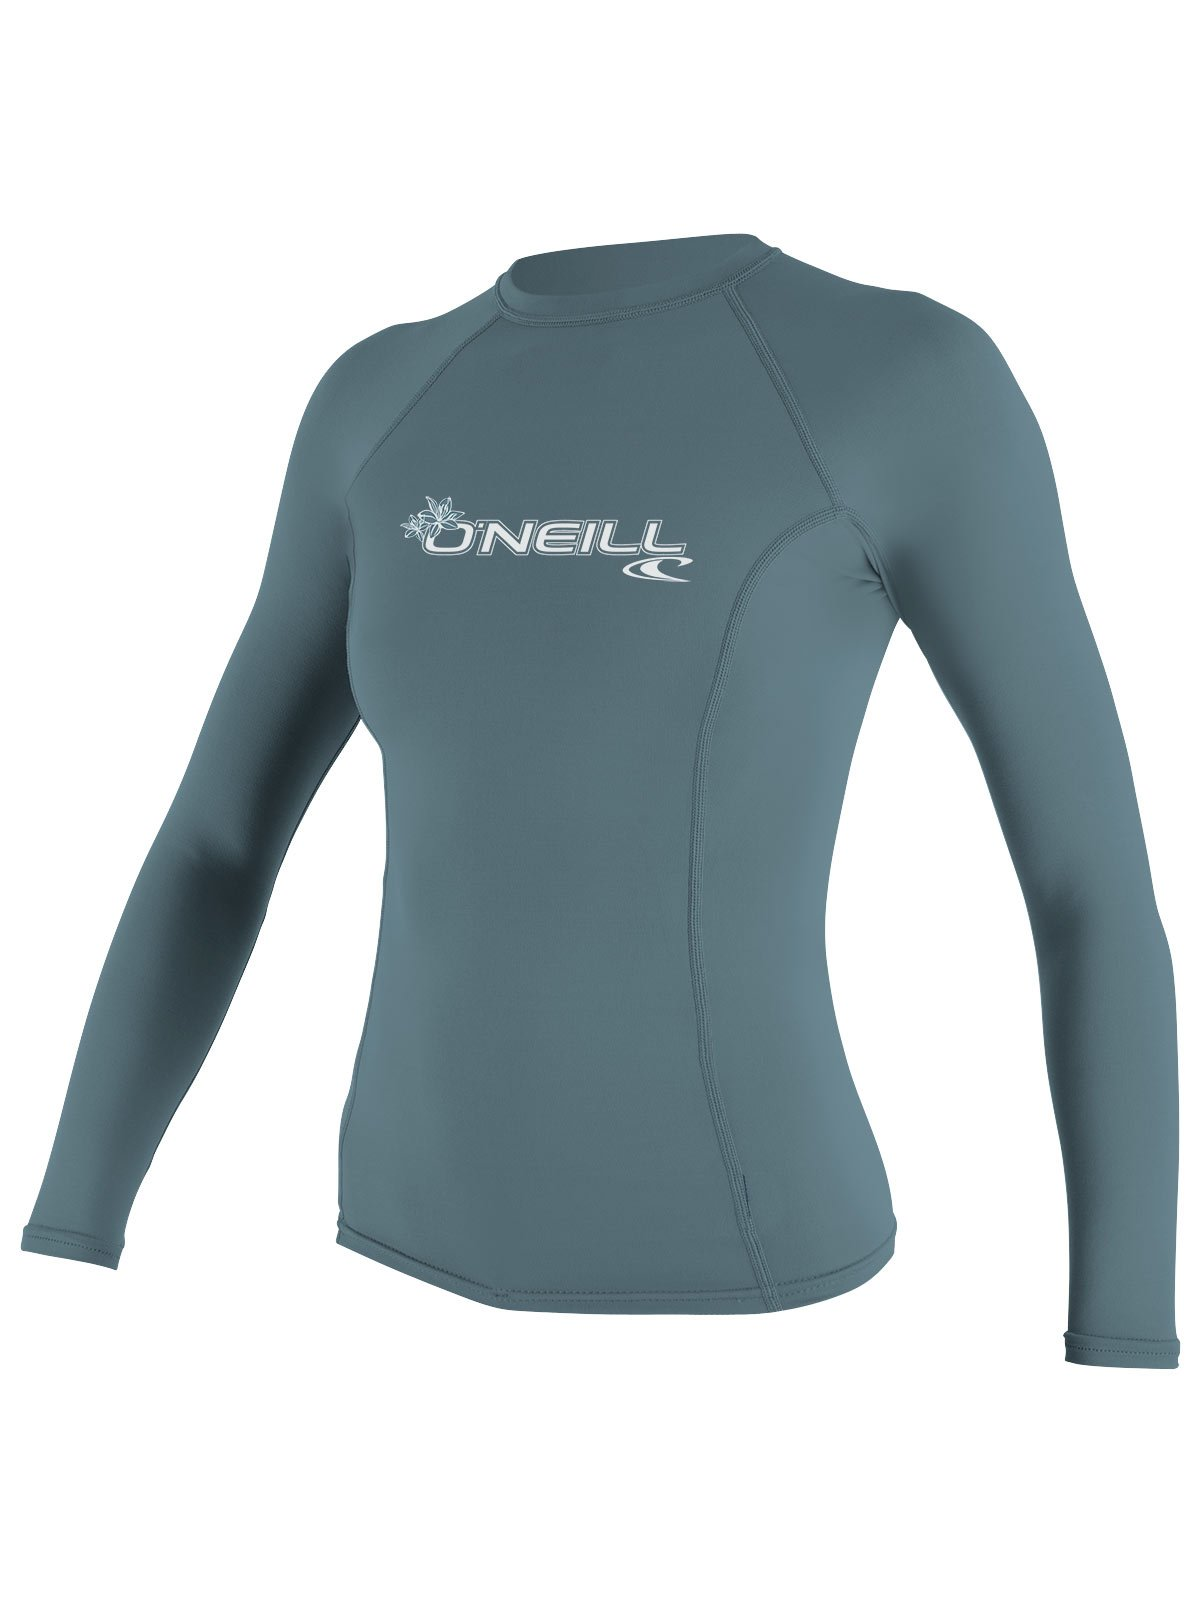 O'Neill women's basic skins long sleeve rashguard XL Dusty blue (3549) by O'Neill Wetsuits